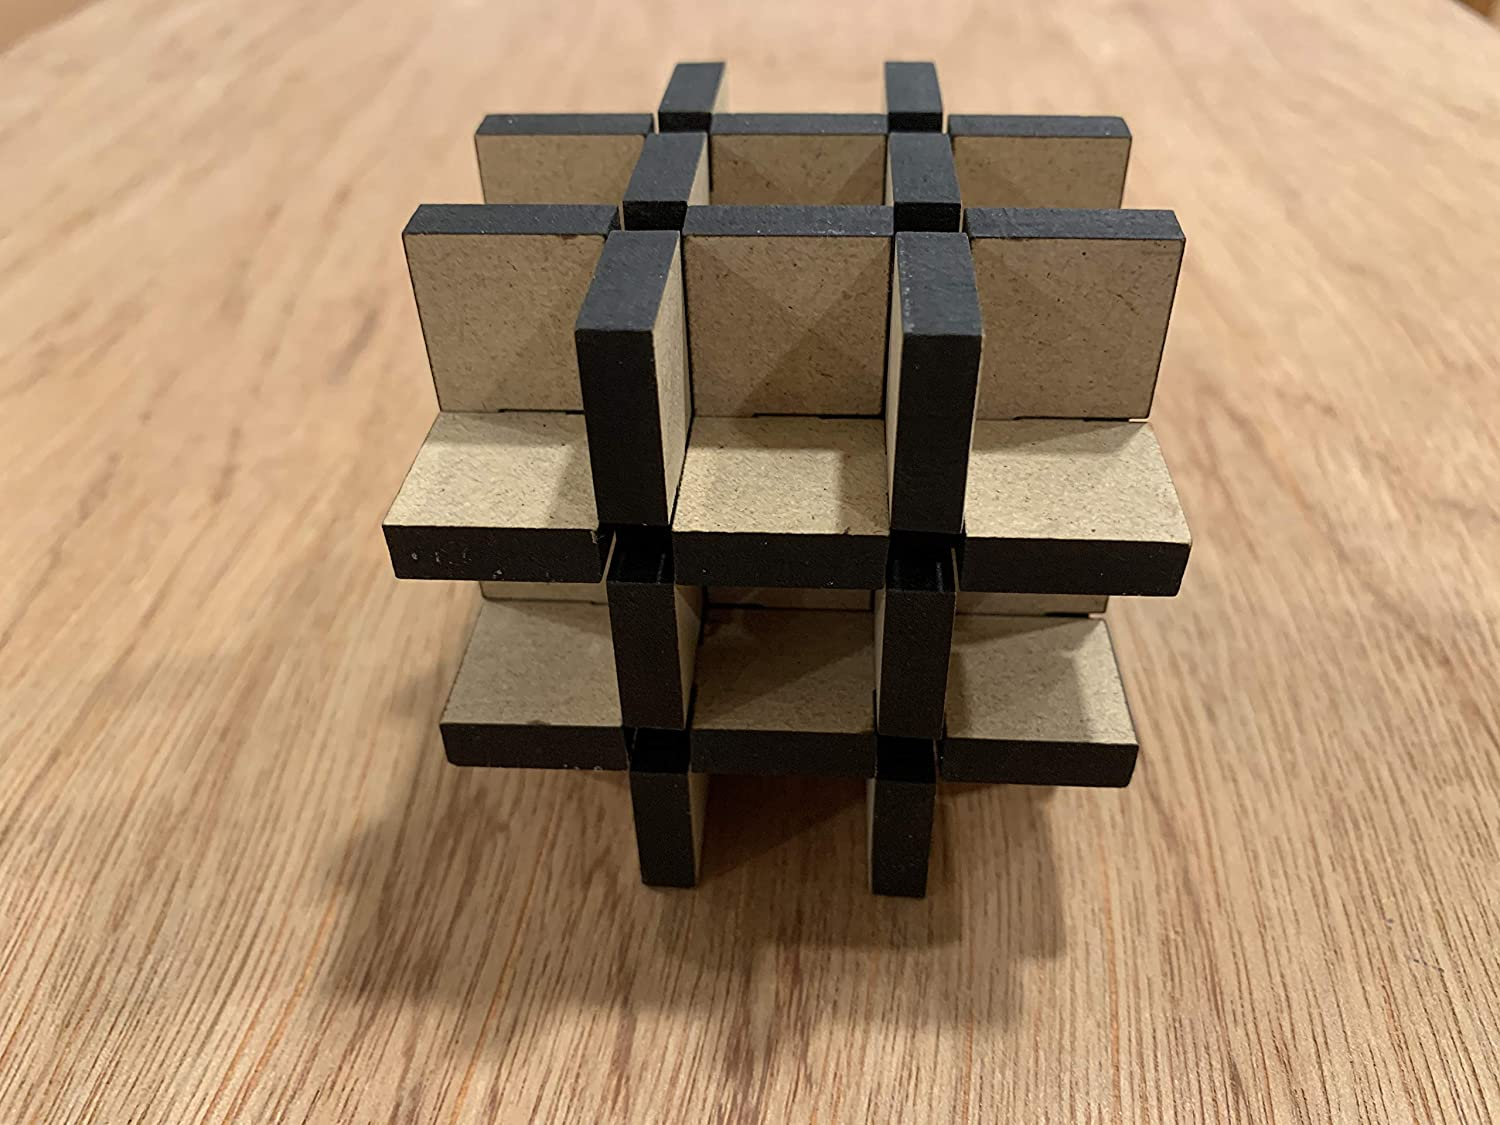 Inversion Cube Puzzle Very Difficult